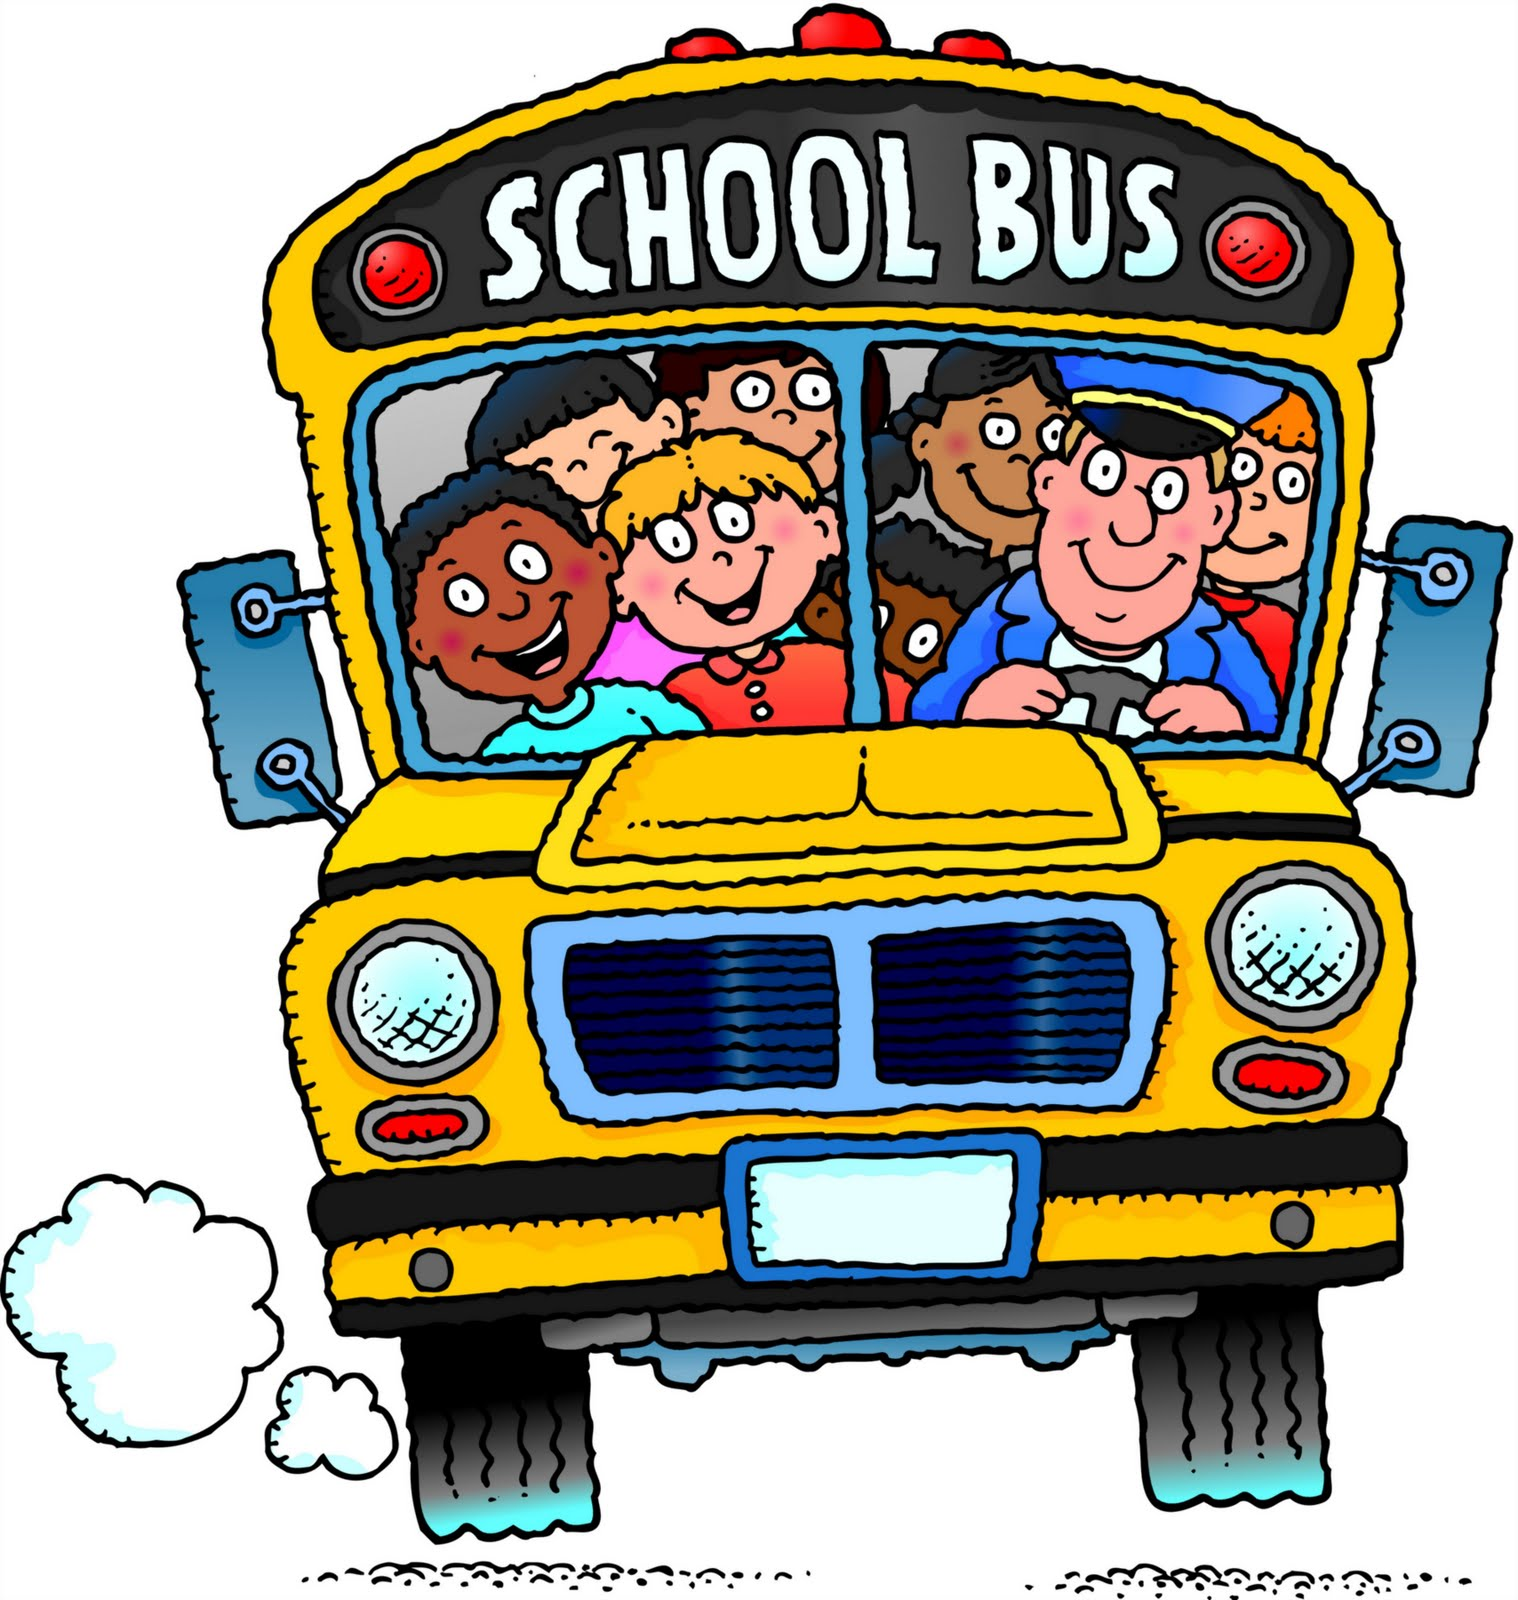 School bus picture free download clip art on